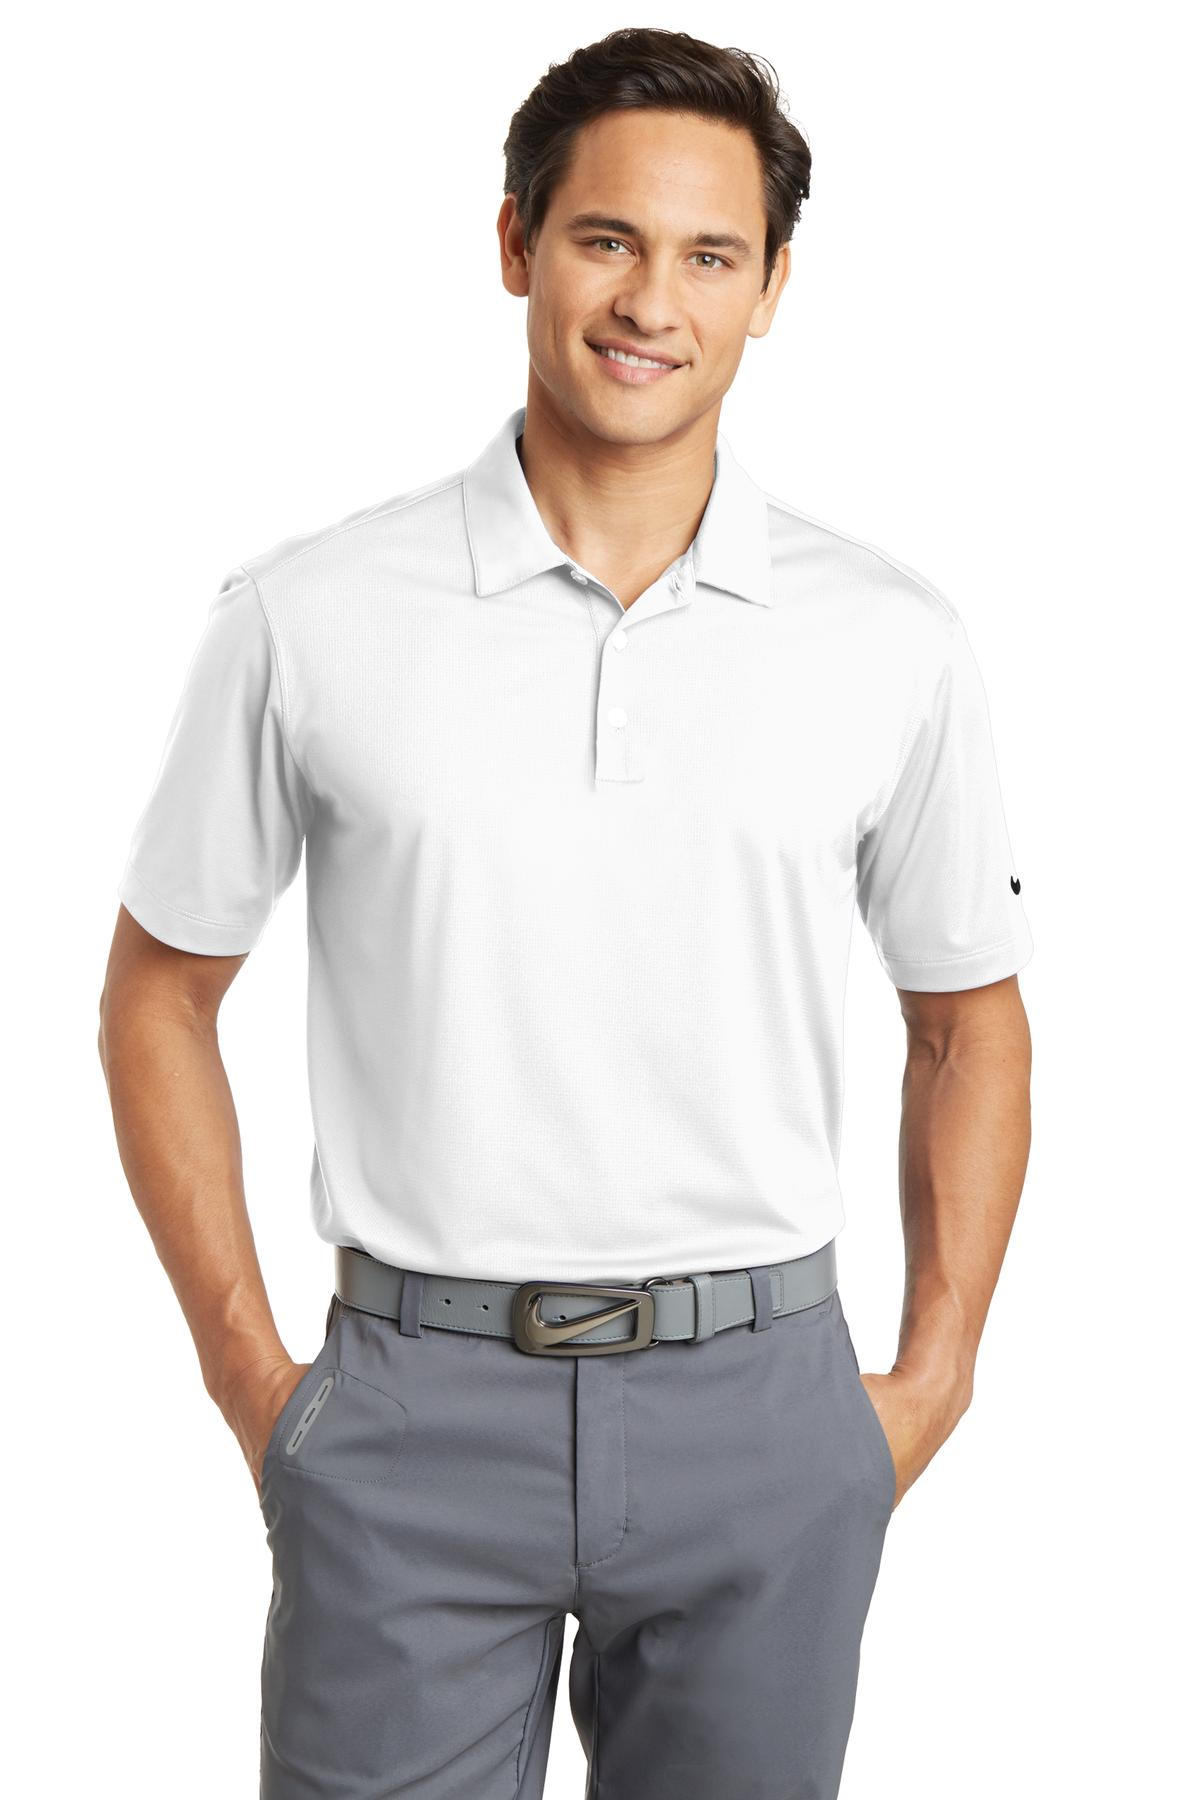 Nike Dri-FIT Vertical Mesh Polo. 637167 - White